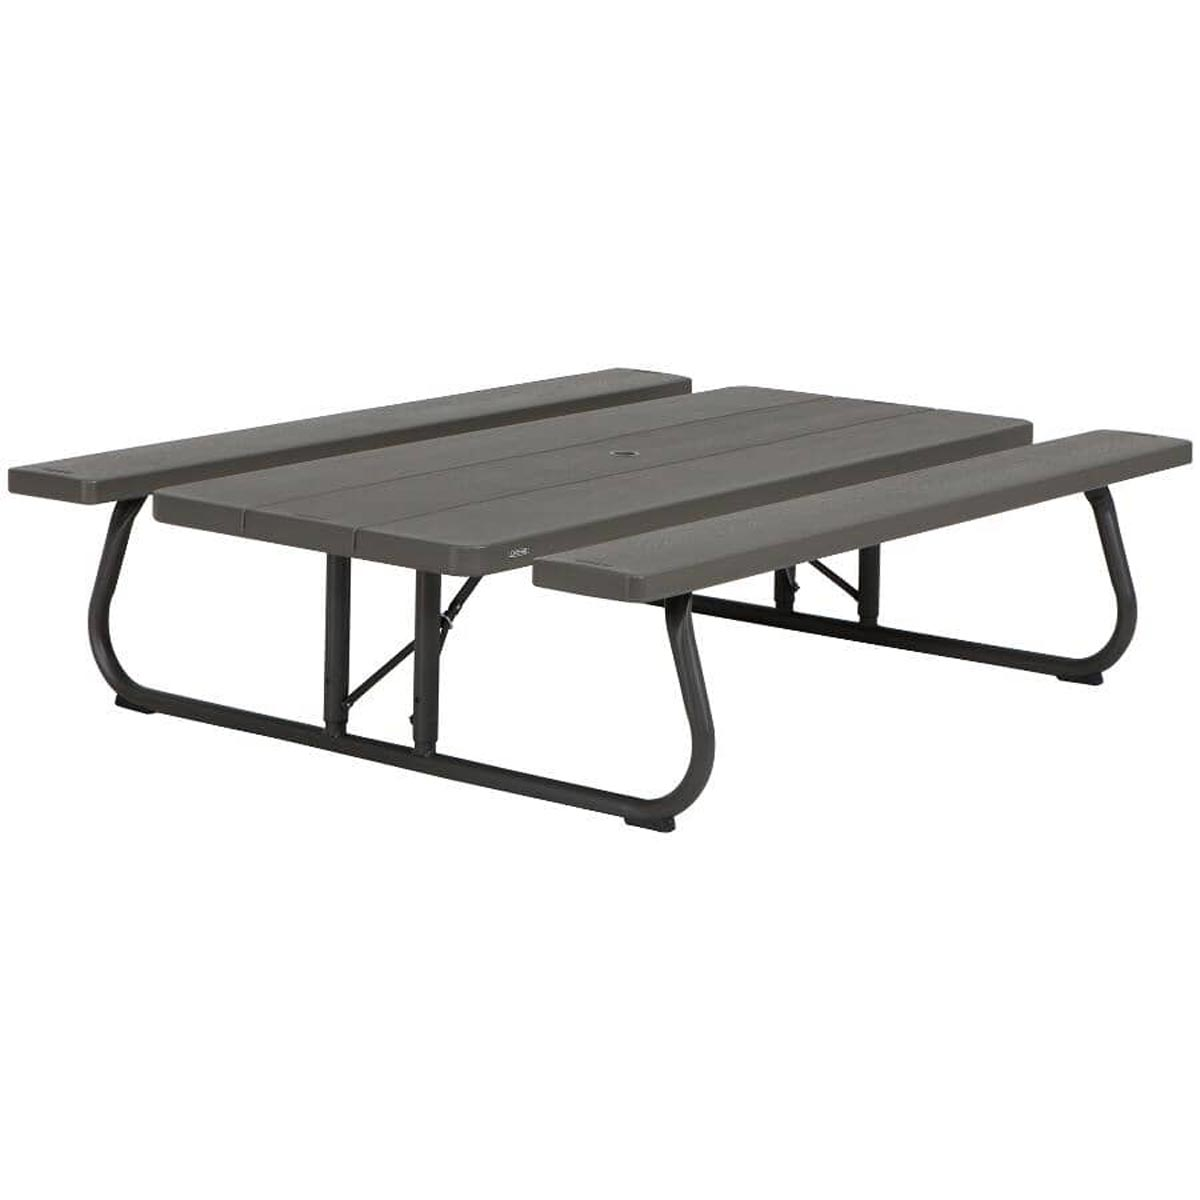 Lifetime 6 ft. Folding Picnic Table with Bench Seats